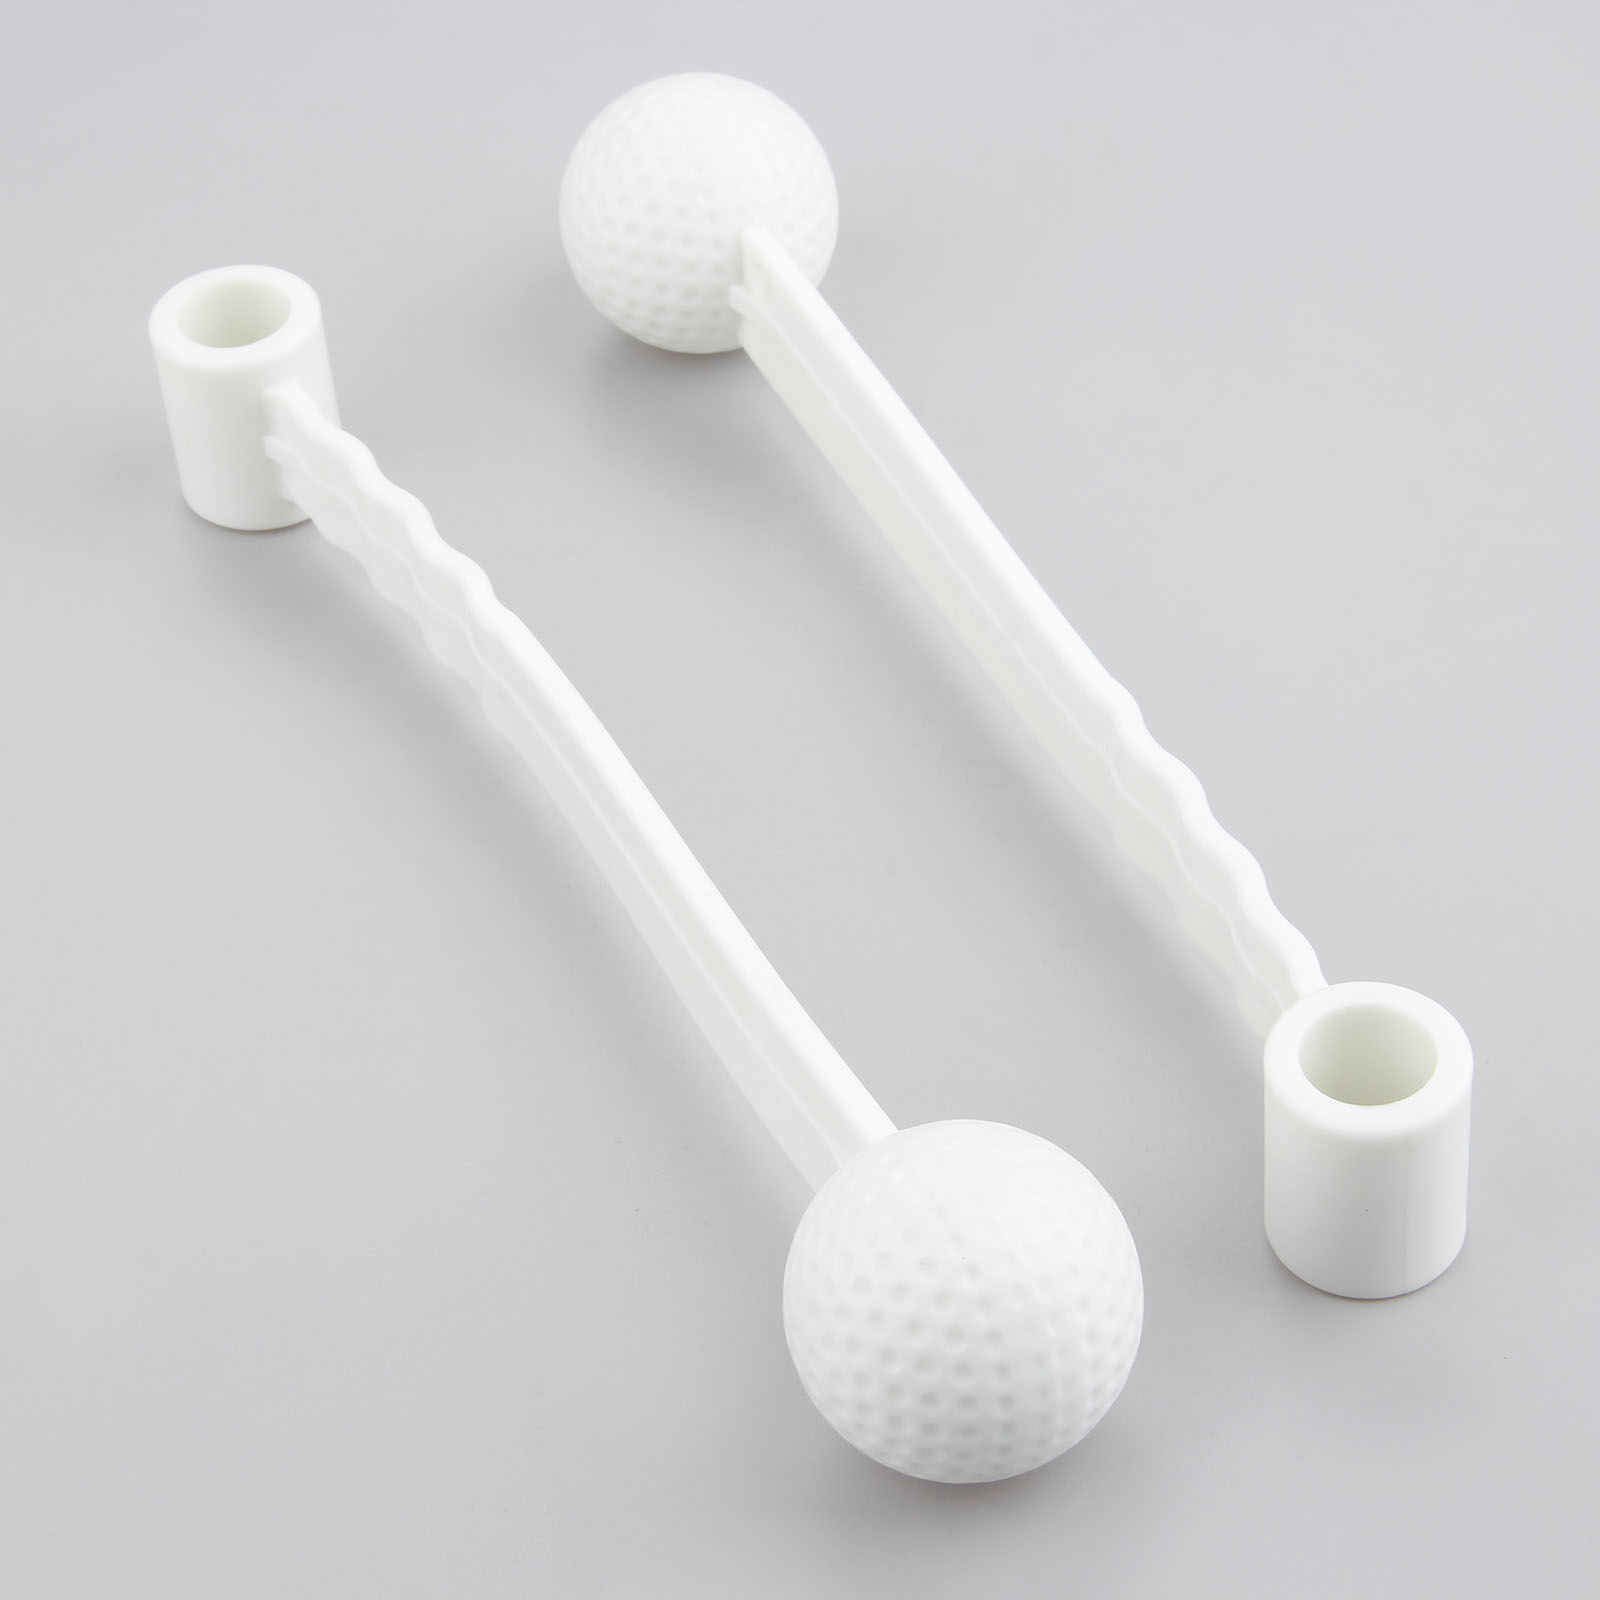 SURIEEN 1 PC Plast Golf Swing Putting Rod Practice Verktøy Beginners Golf Treningshjelp Golf Ball With Stick Golf Tilbehør